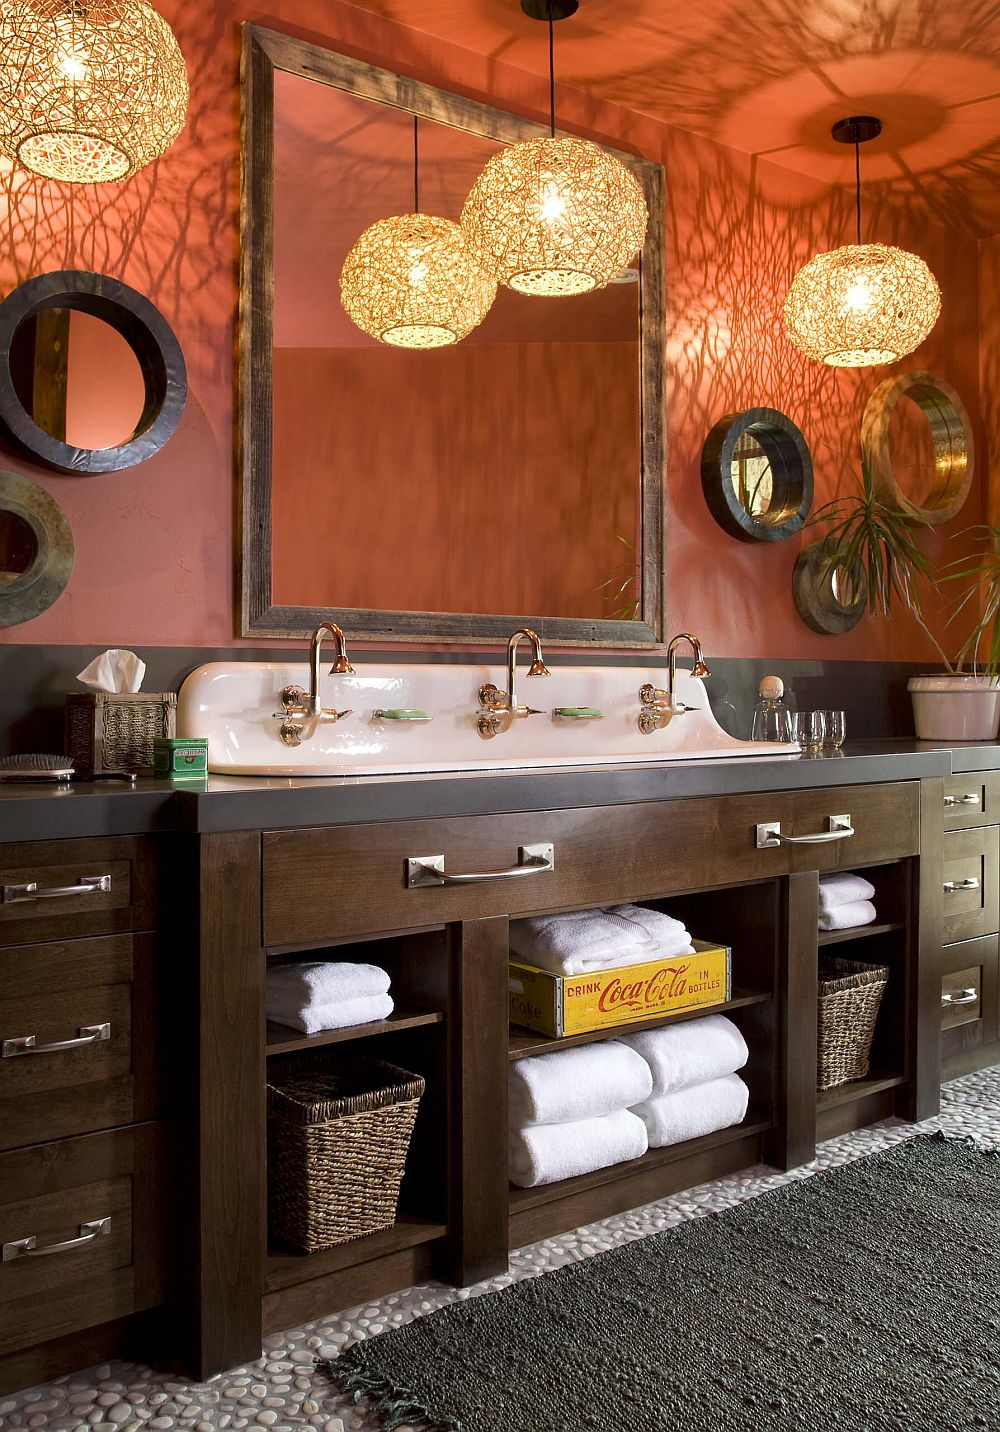 1568143288 478 25 fabulous bathrooms color trends for fall to try out - 25 Fabulous Bathrooms Color Trends for Fall to Try Out